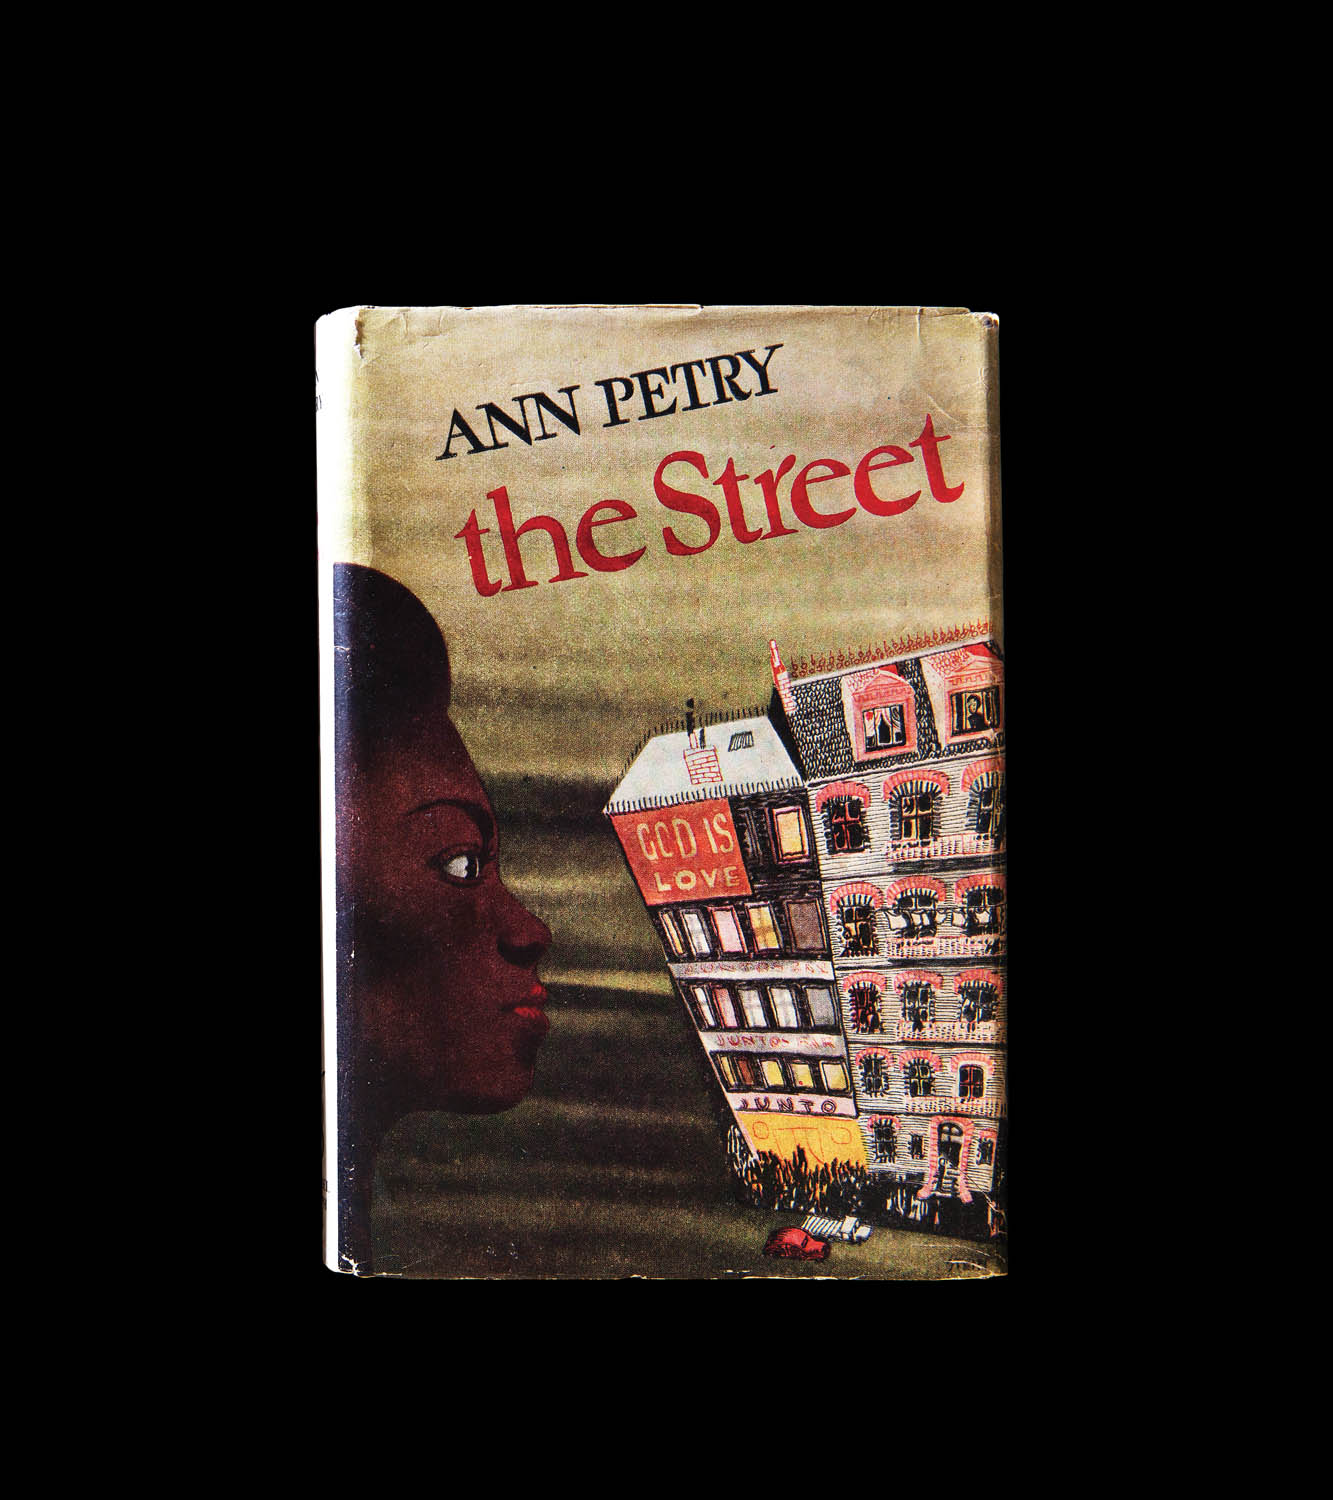 Ann Petry's The Street was the first book by an African American woman to sell a million copies in the US. (First UK edition above.) Photographed by Jo Emmerson